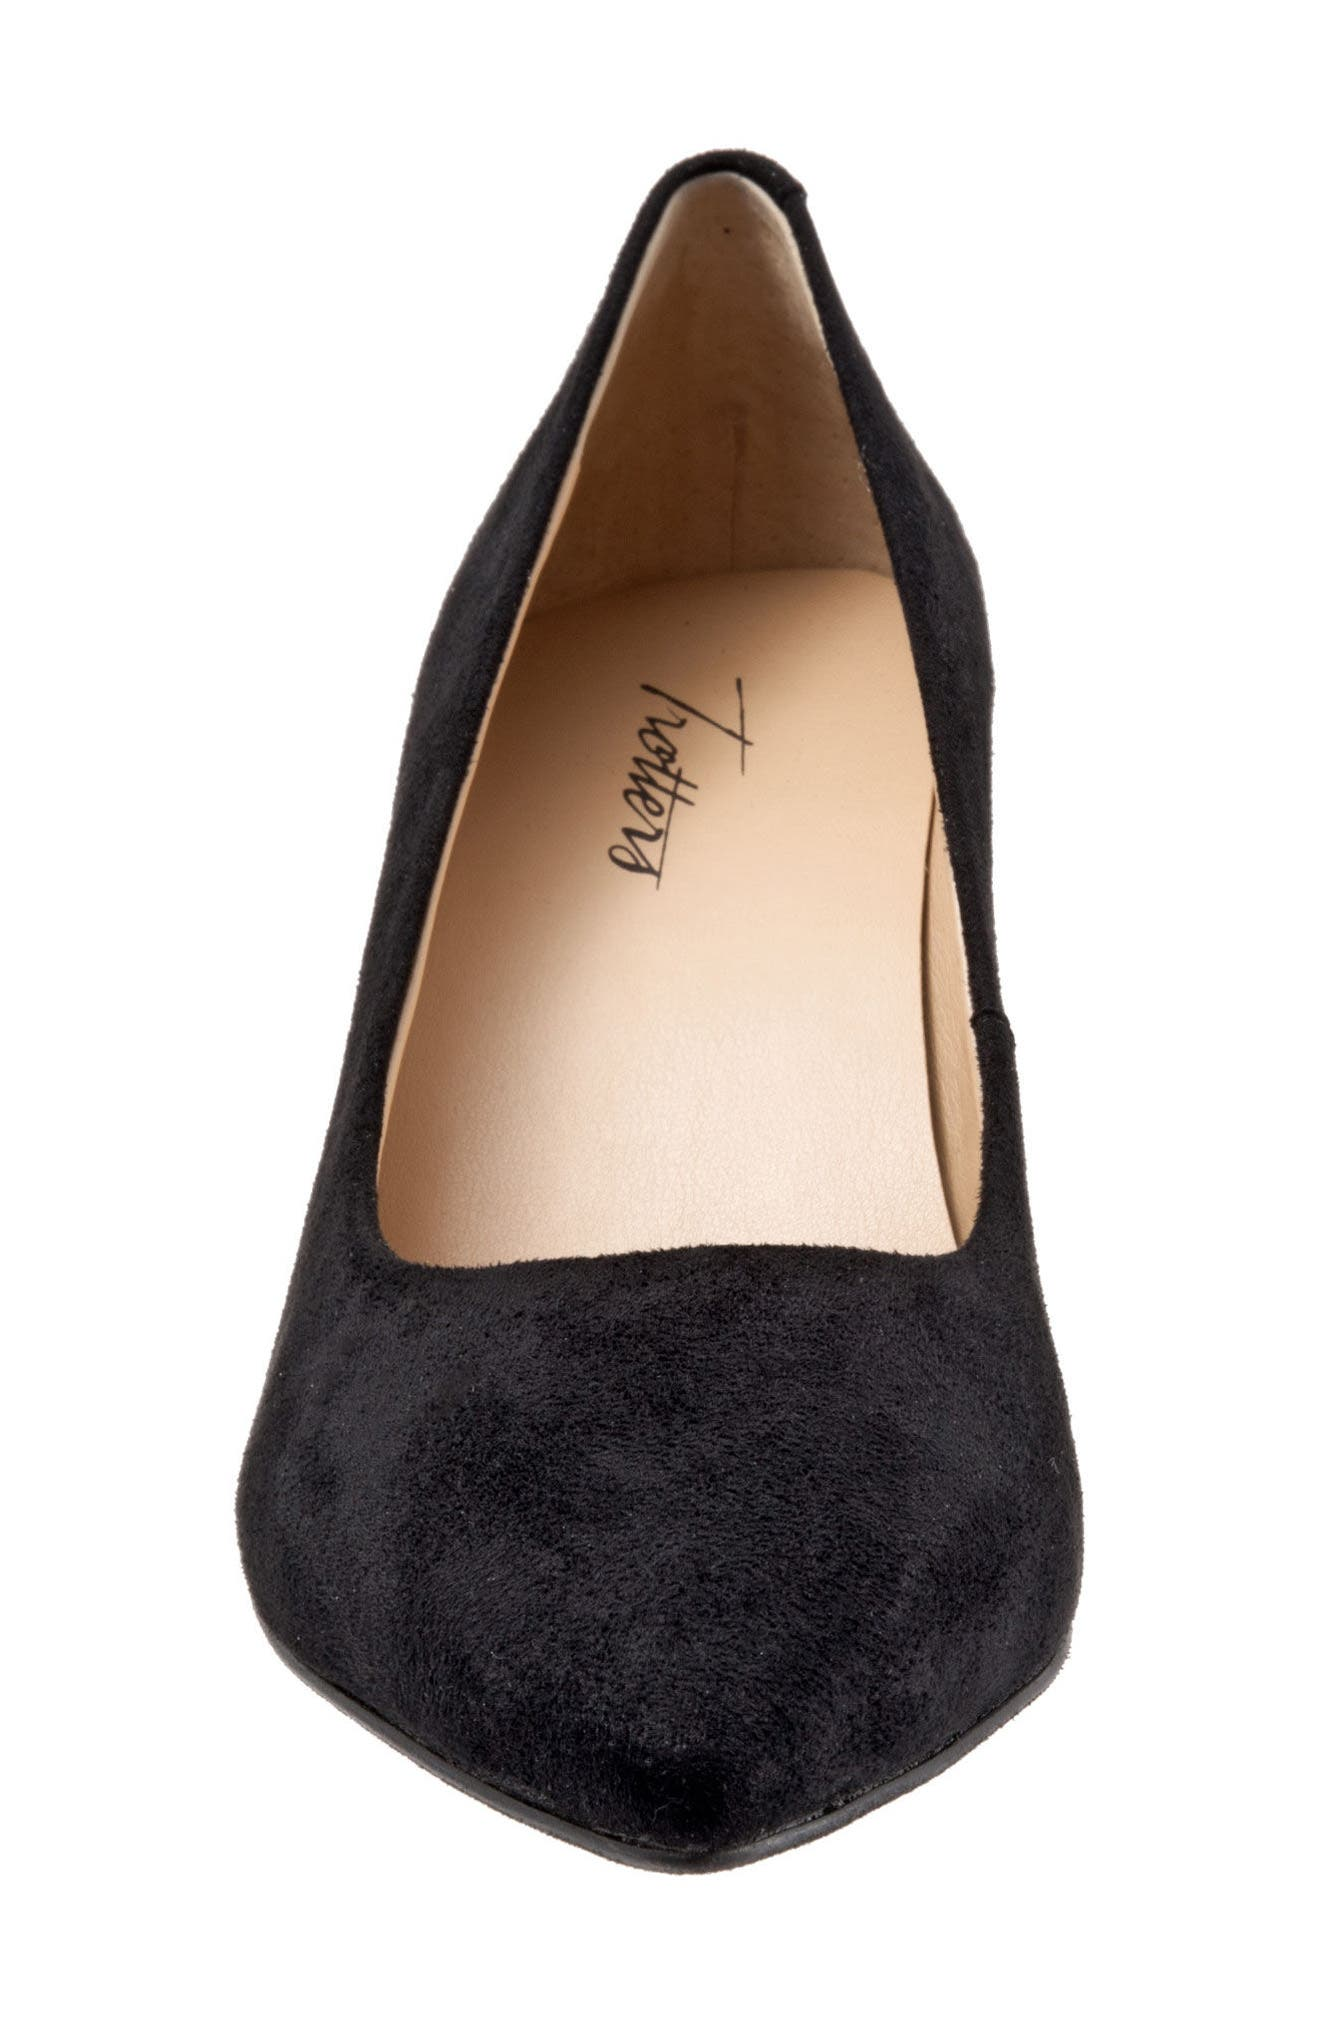 Noelle Pointy Toe Pump,                             Alternate thumbnail 4, color,                             BLACK FABRIC